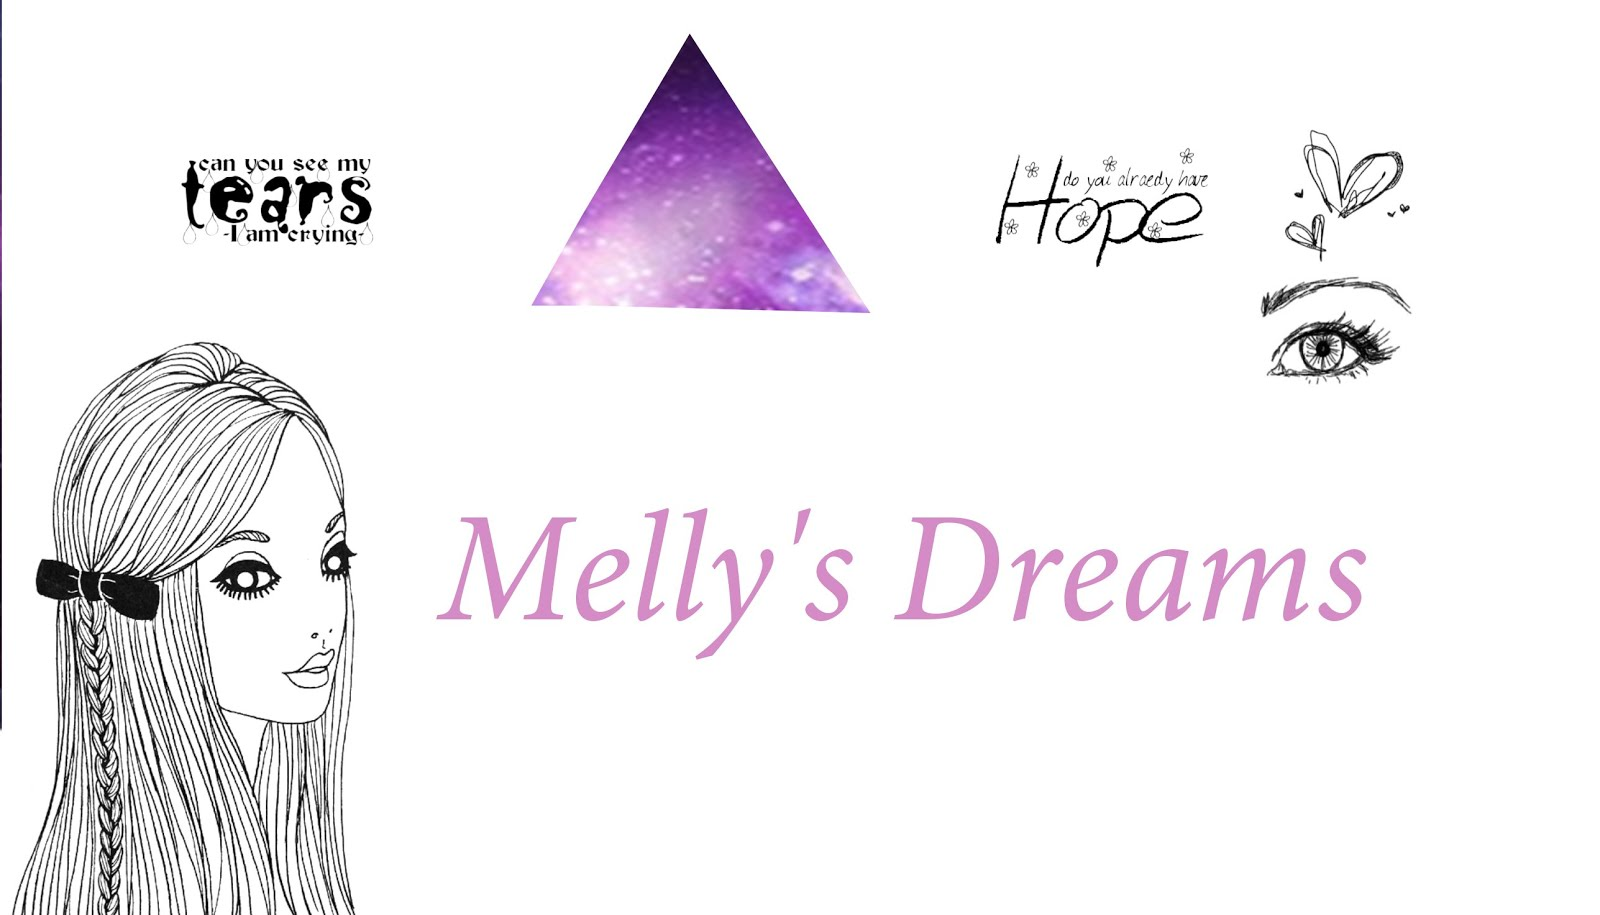 Melly's Dreams